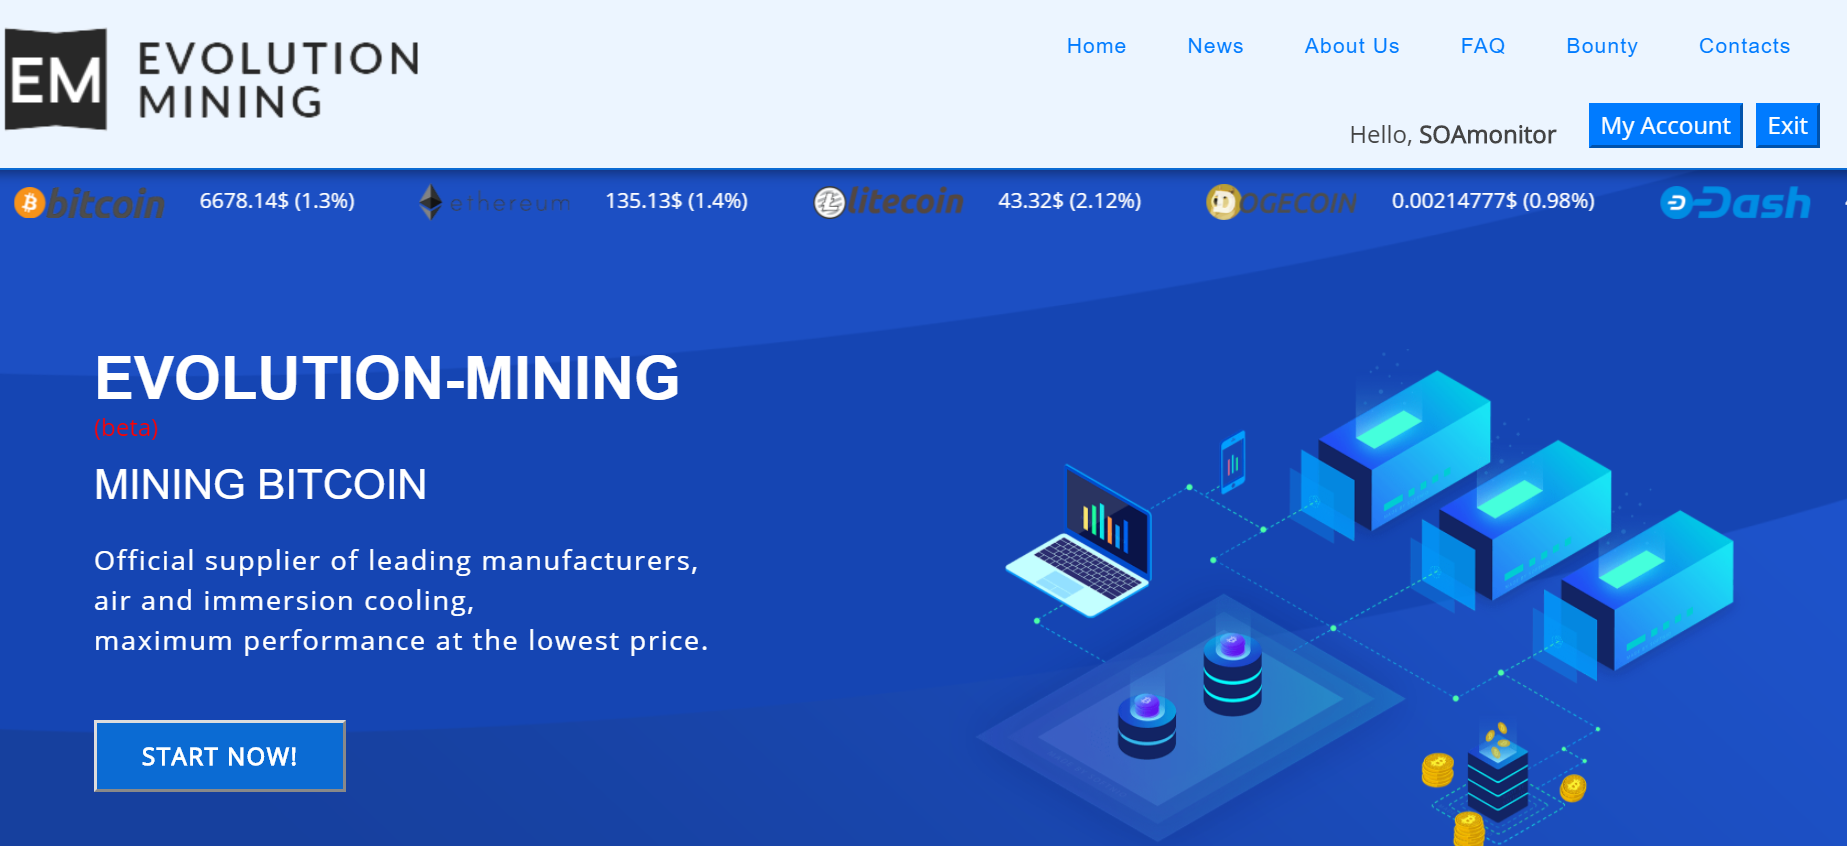 evolution-mining.com reviews